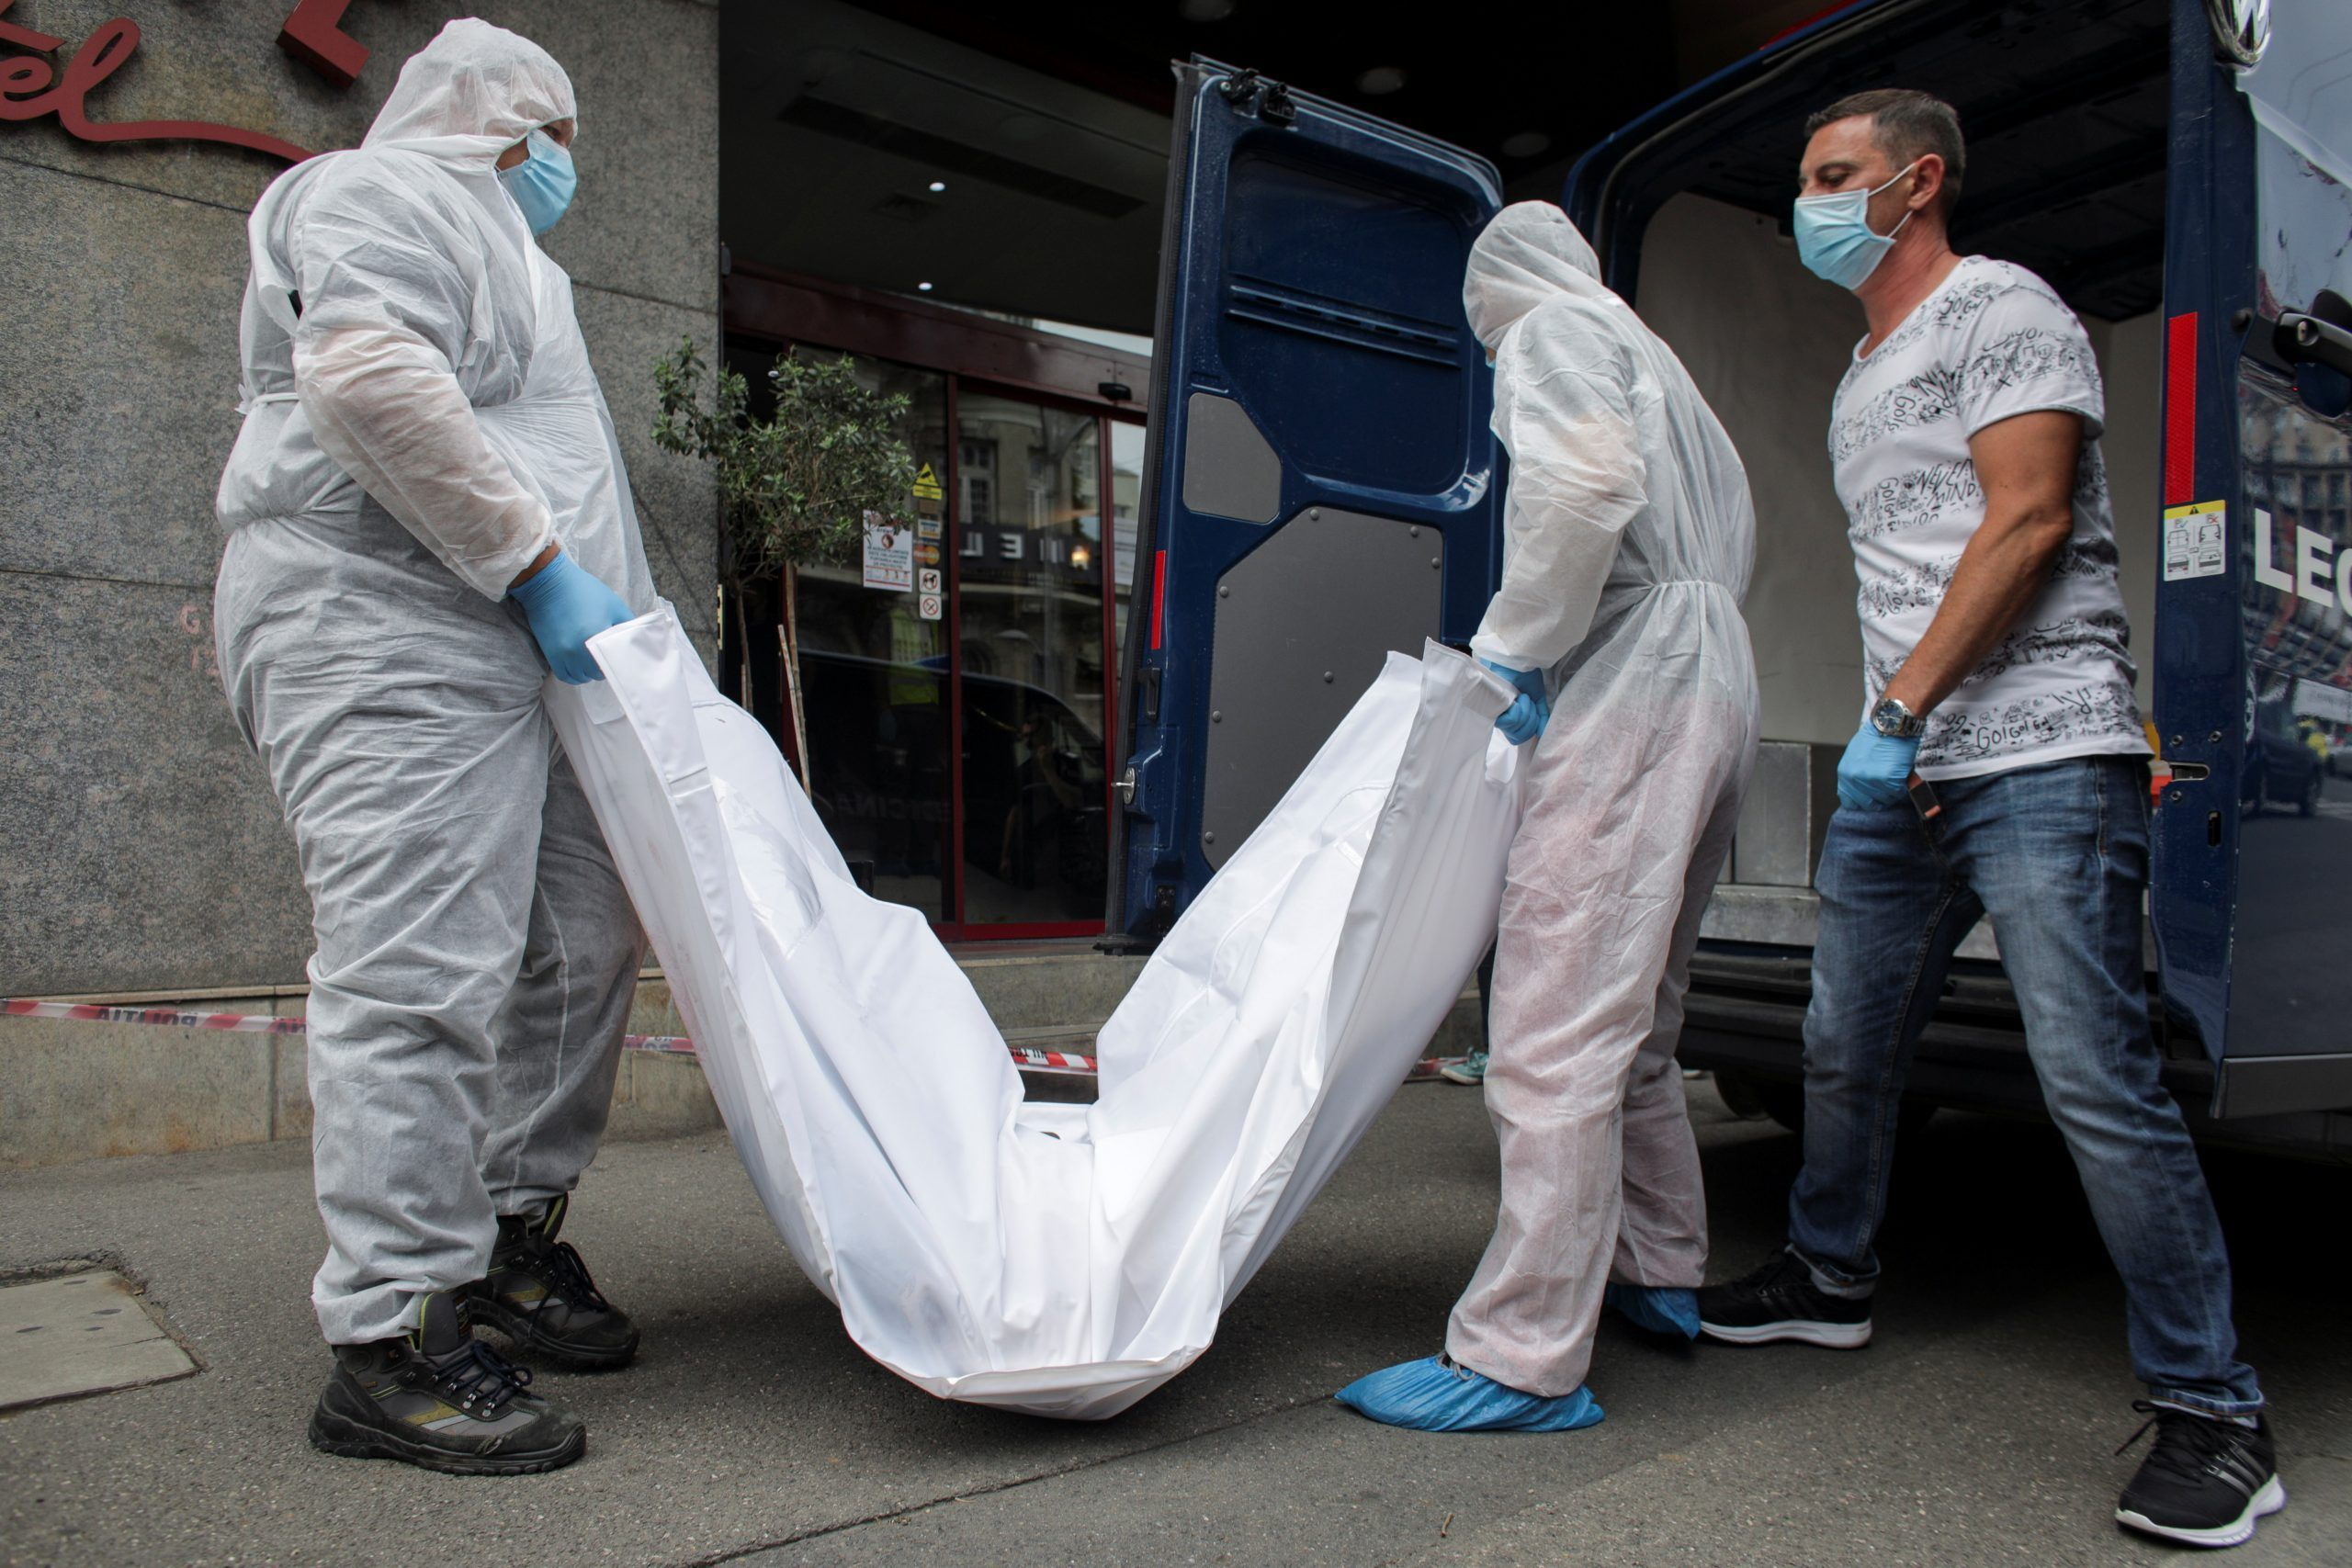 Forensic medicine staff carry a body bag, allegedly containing the remains of Gholamreza Mansouri, outside a hotel in downtown Bucharest, Romania, June 19, 2020.